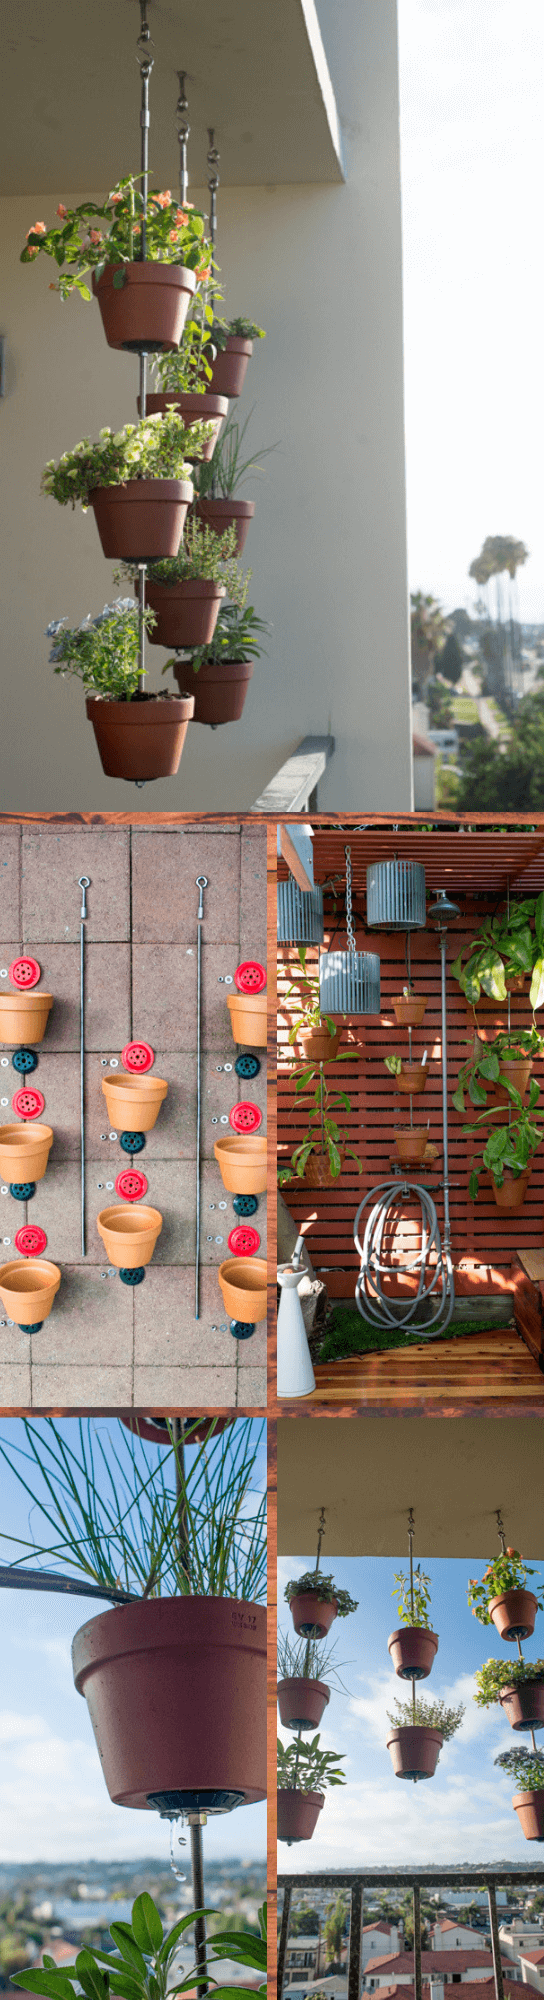 DIY vertical clay pots